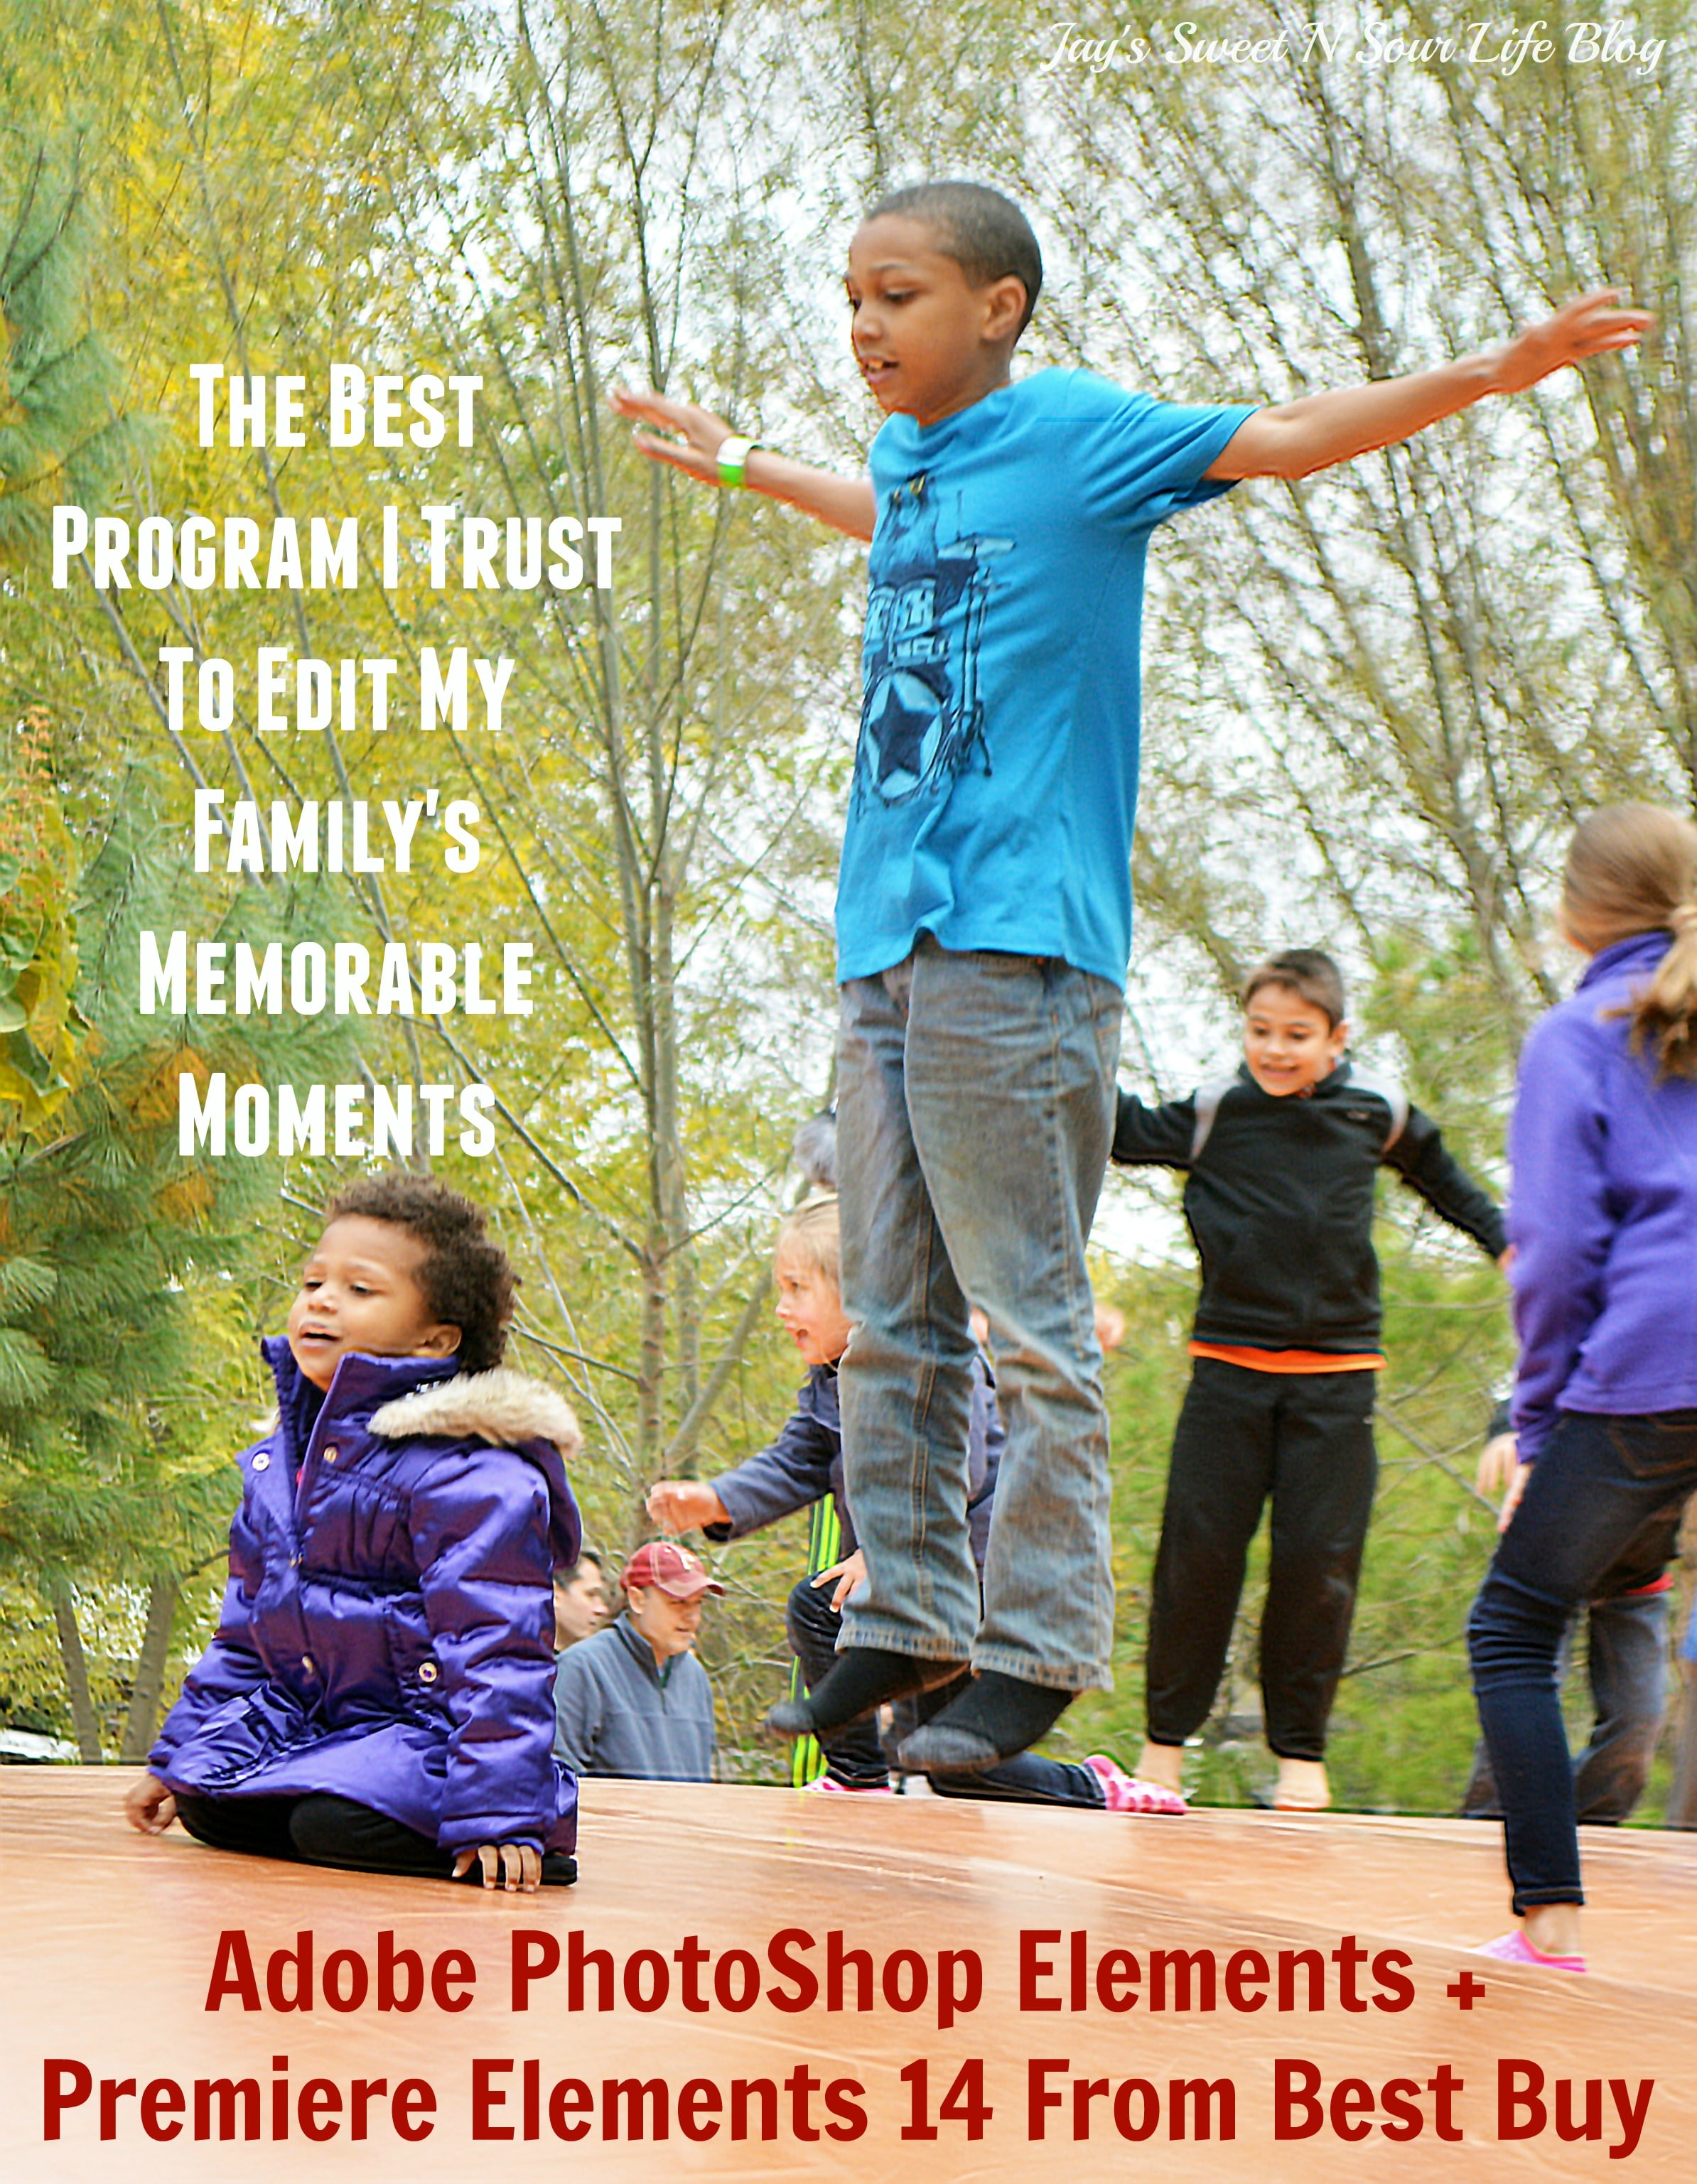 The Best Program I Trust To Edit My Family's Memorable Moments – Adobe PhotoShop Elements + Premiere Elements 14 From Best Buy?